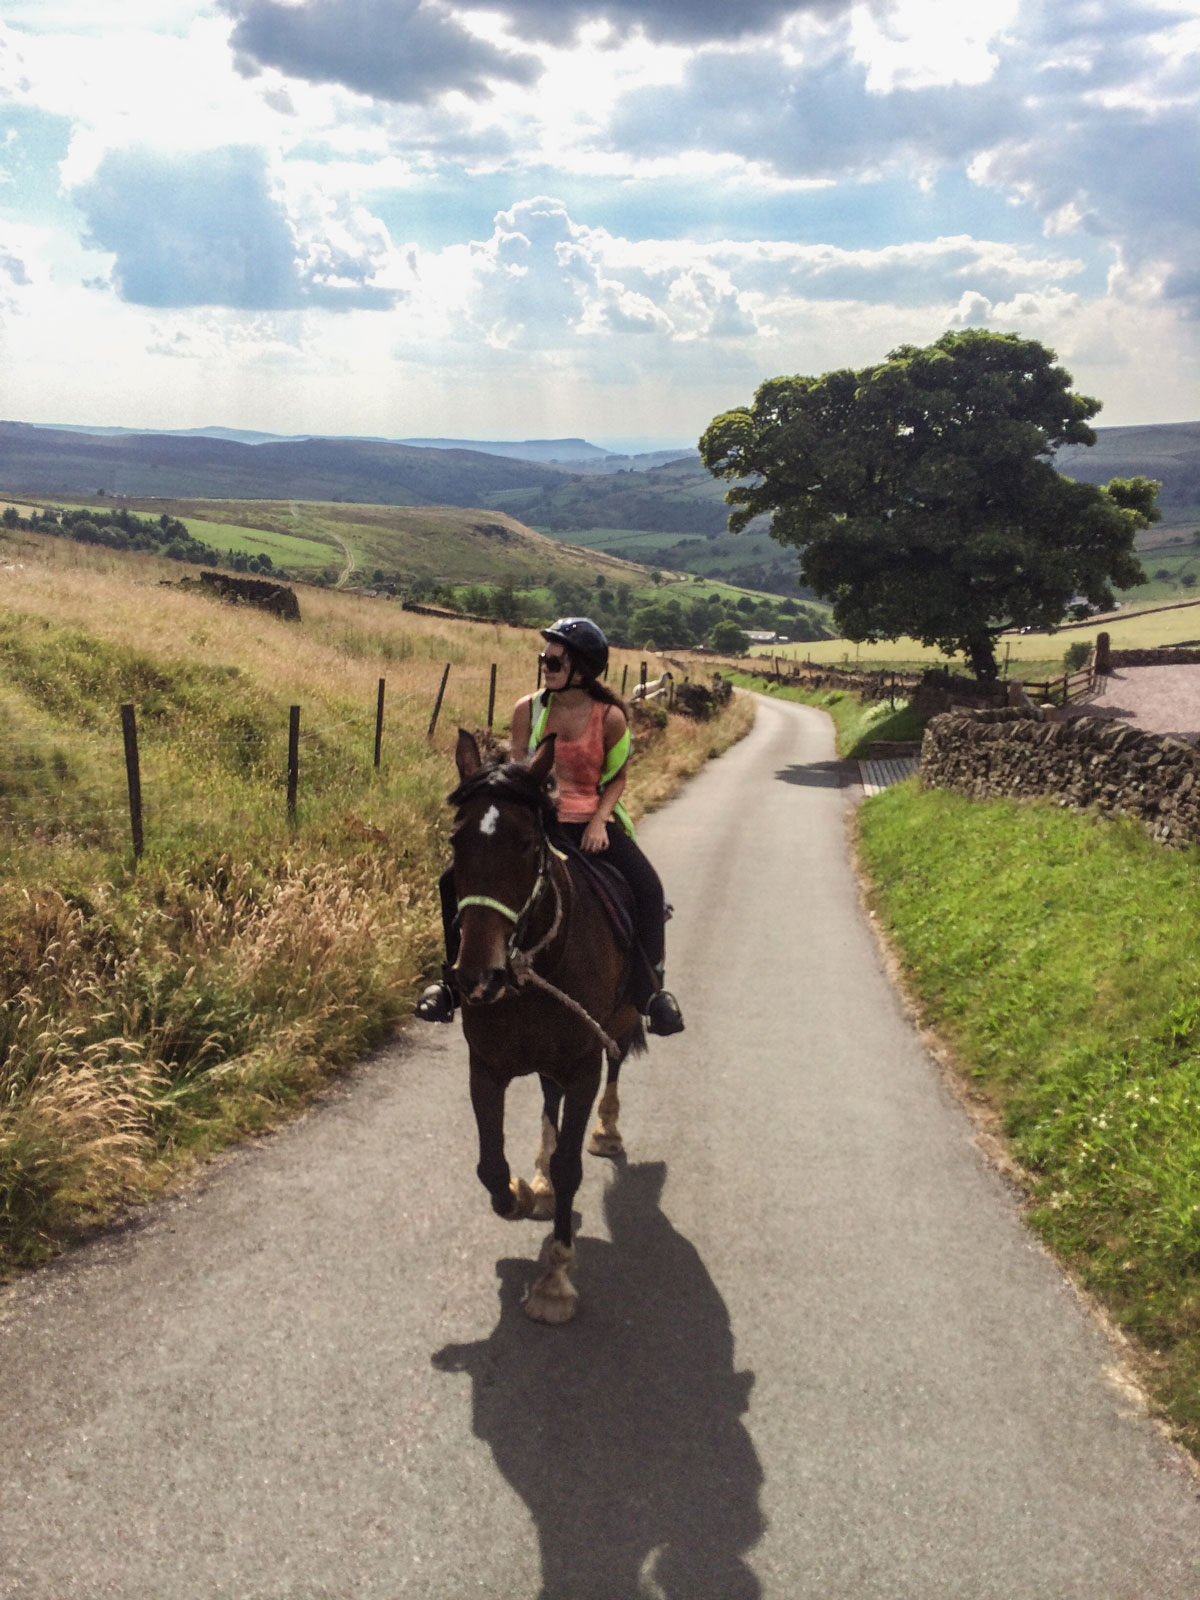 Northfield-Farm-pony-trekking-near-Bakewell-Derbyshire---Flash-England's-highest-village